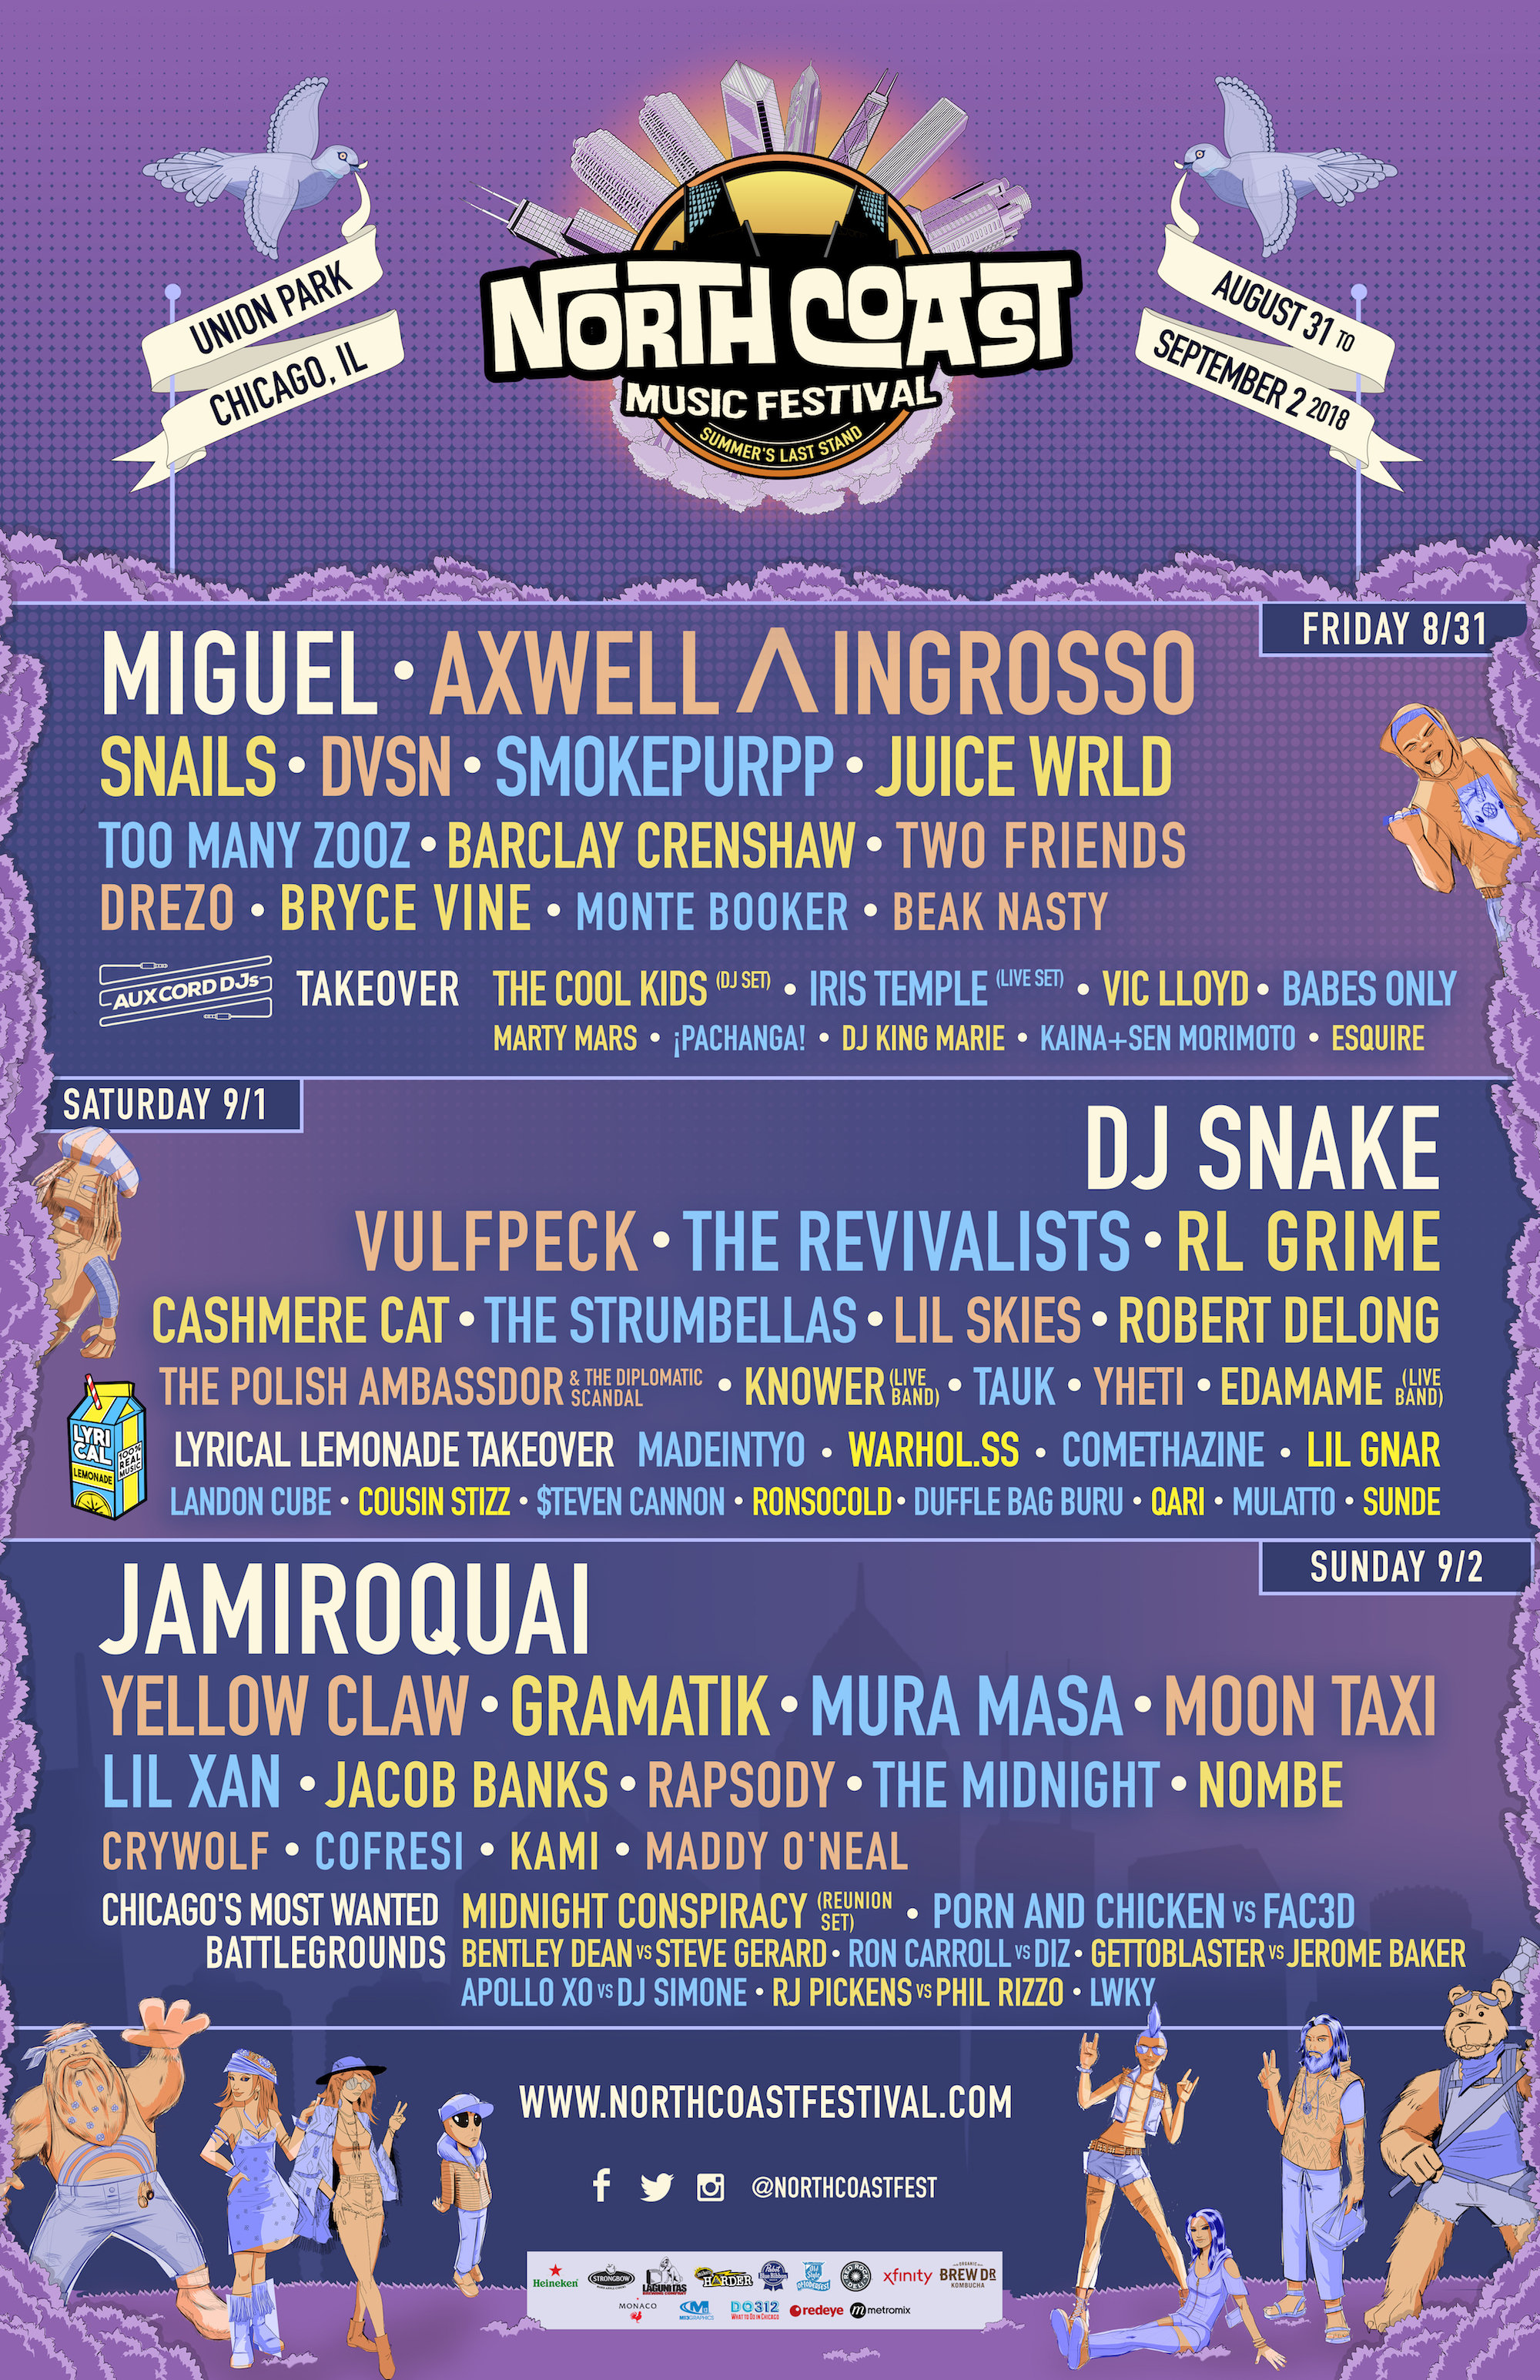 North Coast Music Festival 2018 Artists (listed alphabetically): Apollo XO vs. DJ Simone Axwell ^ Ingrosso Babes Only Barclay Crenshaw Beak Nasty Bentley Bean vs. Steve Gerard Bryce Vine Cashmere Cat Cofresi Comethazine Cousin Stizz Crywolf DJ King Marie DJ Snake Drezo Duffle Bag Buru DVSN Edamame (Live Band) Esquire Getto Blaster vs. Jerome Baker Gramatik Iris Temple (Live Set) Jacob Banks Jamiroquai Juice WRLD Kaina + Sen Morimoto Kami Knower (Live Band) Landon Cube Lil Gnar Lil Skies Lil Xan LWKY Maddy O'Neal MadeinTYO Marty Mars Midnight Conspiracy Miguel Monte Booker Moon Taxi Mulatto Mura Masa Nombe Pachanga! Porn and Chicken vs. 2FAC3D Qari Rapsody RJ Pickens vs. Phil Rizzo RL Grime Robert Delong Ron Carroll vs. DIZ Ronsocold Smokepurpp Snails $teven Cannon Tauk The Cool Kids (DJ Set) The Midnight The Polish Ambassador & The Diplomatic Scandal The Revivalists The Strumbellas Too Many Zooz Two Friends Vic Lloyd Vulfpeck Warhol.ss Yellow Claw Yheti